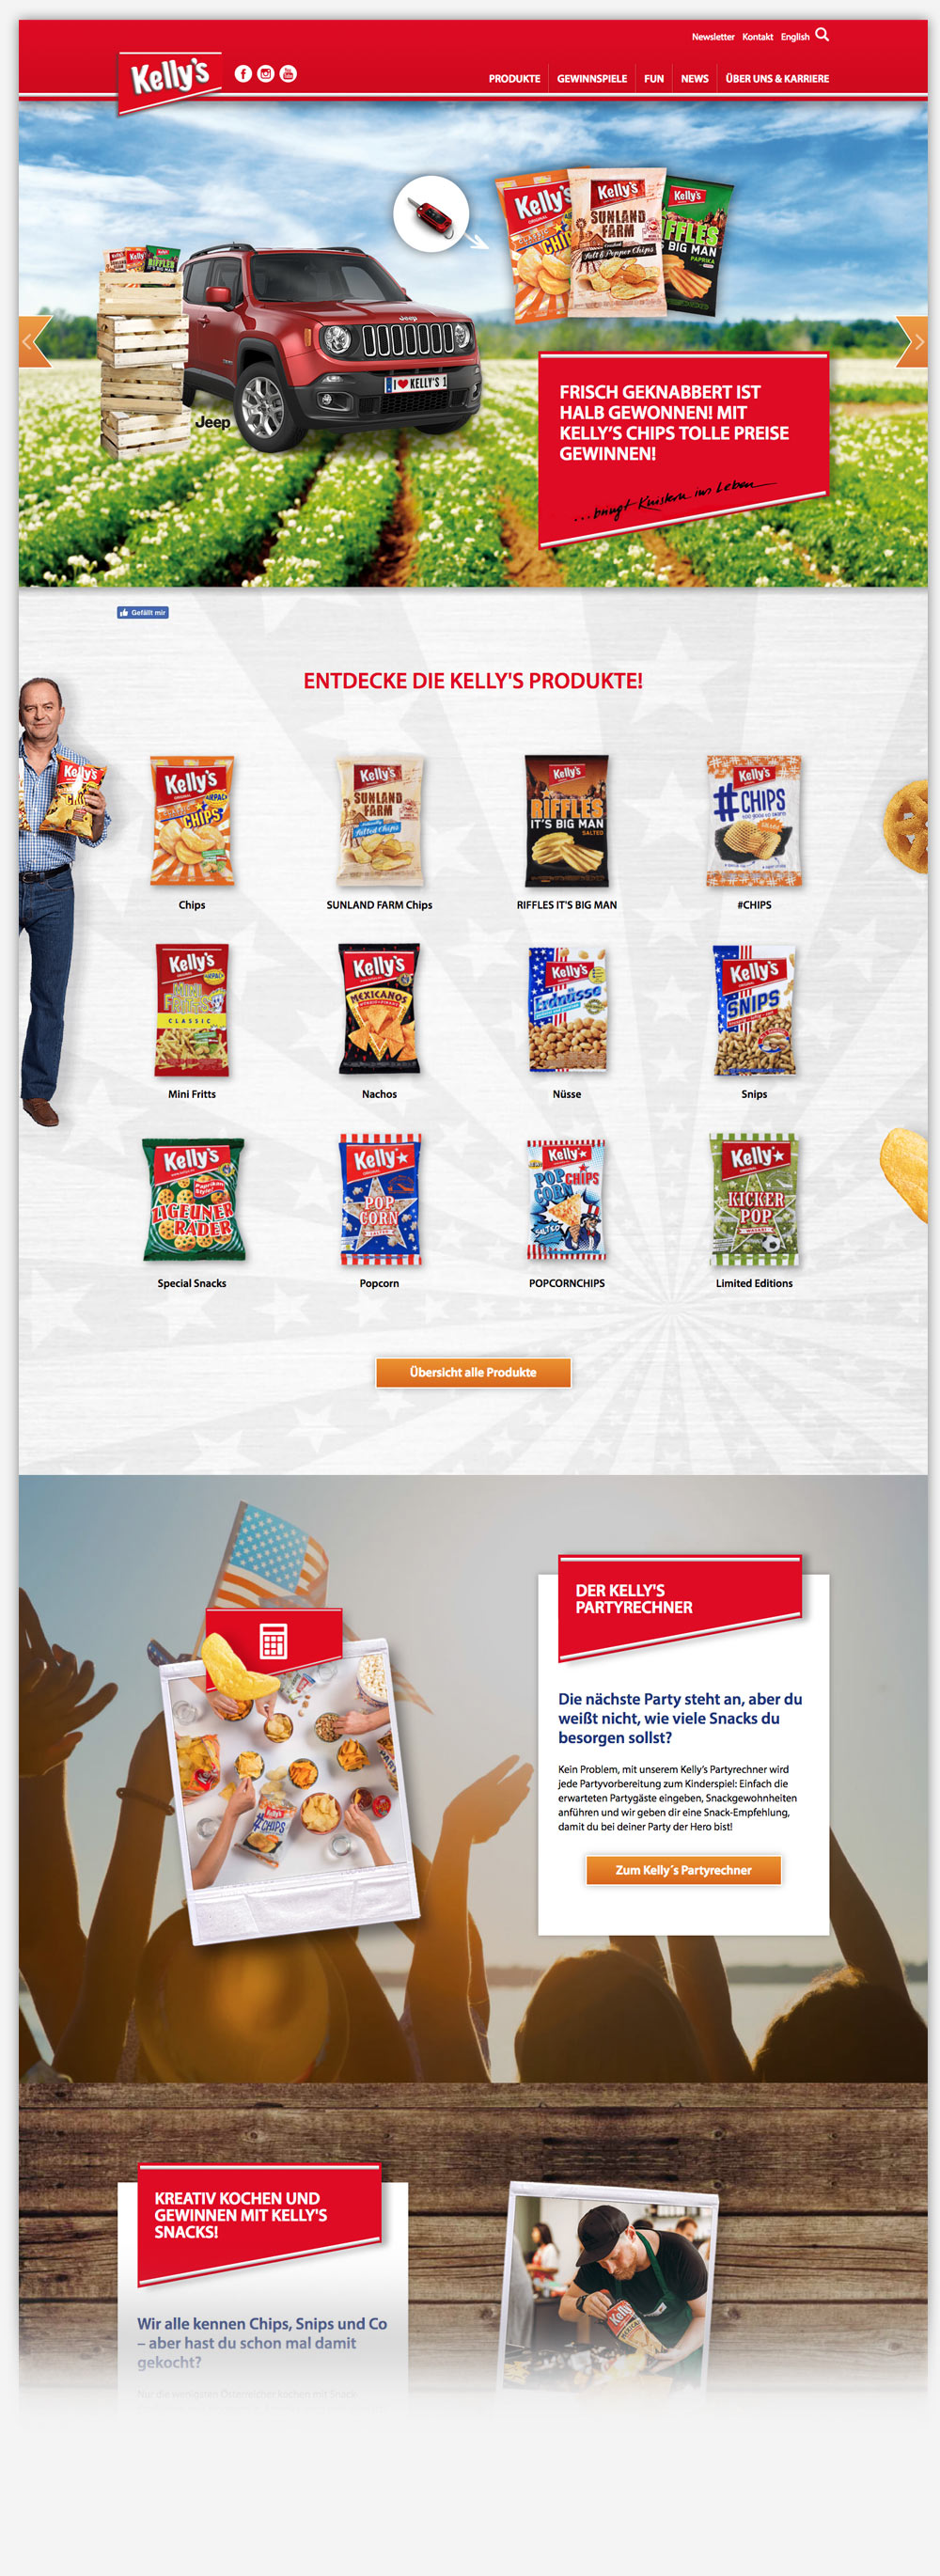 Kellys Chips Snacks Website Relaunch C21 new media design Online-Agentur Digitalagentur Webagentur Wien